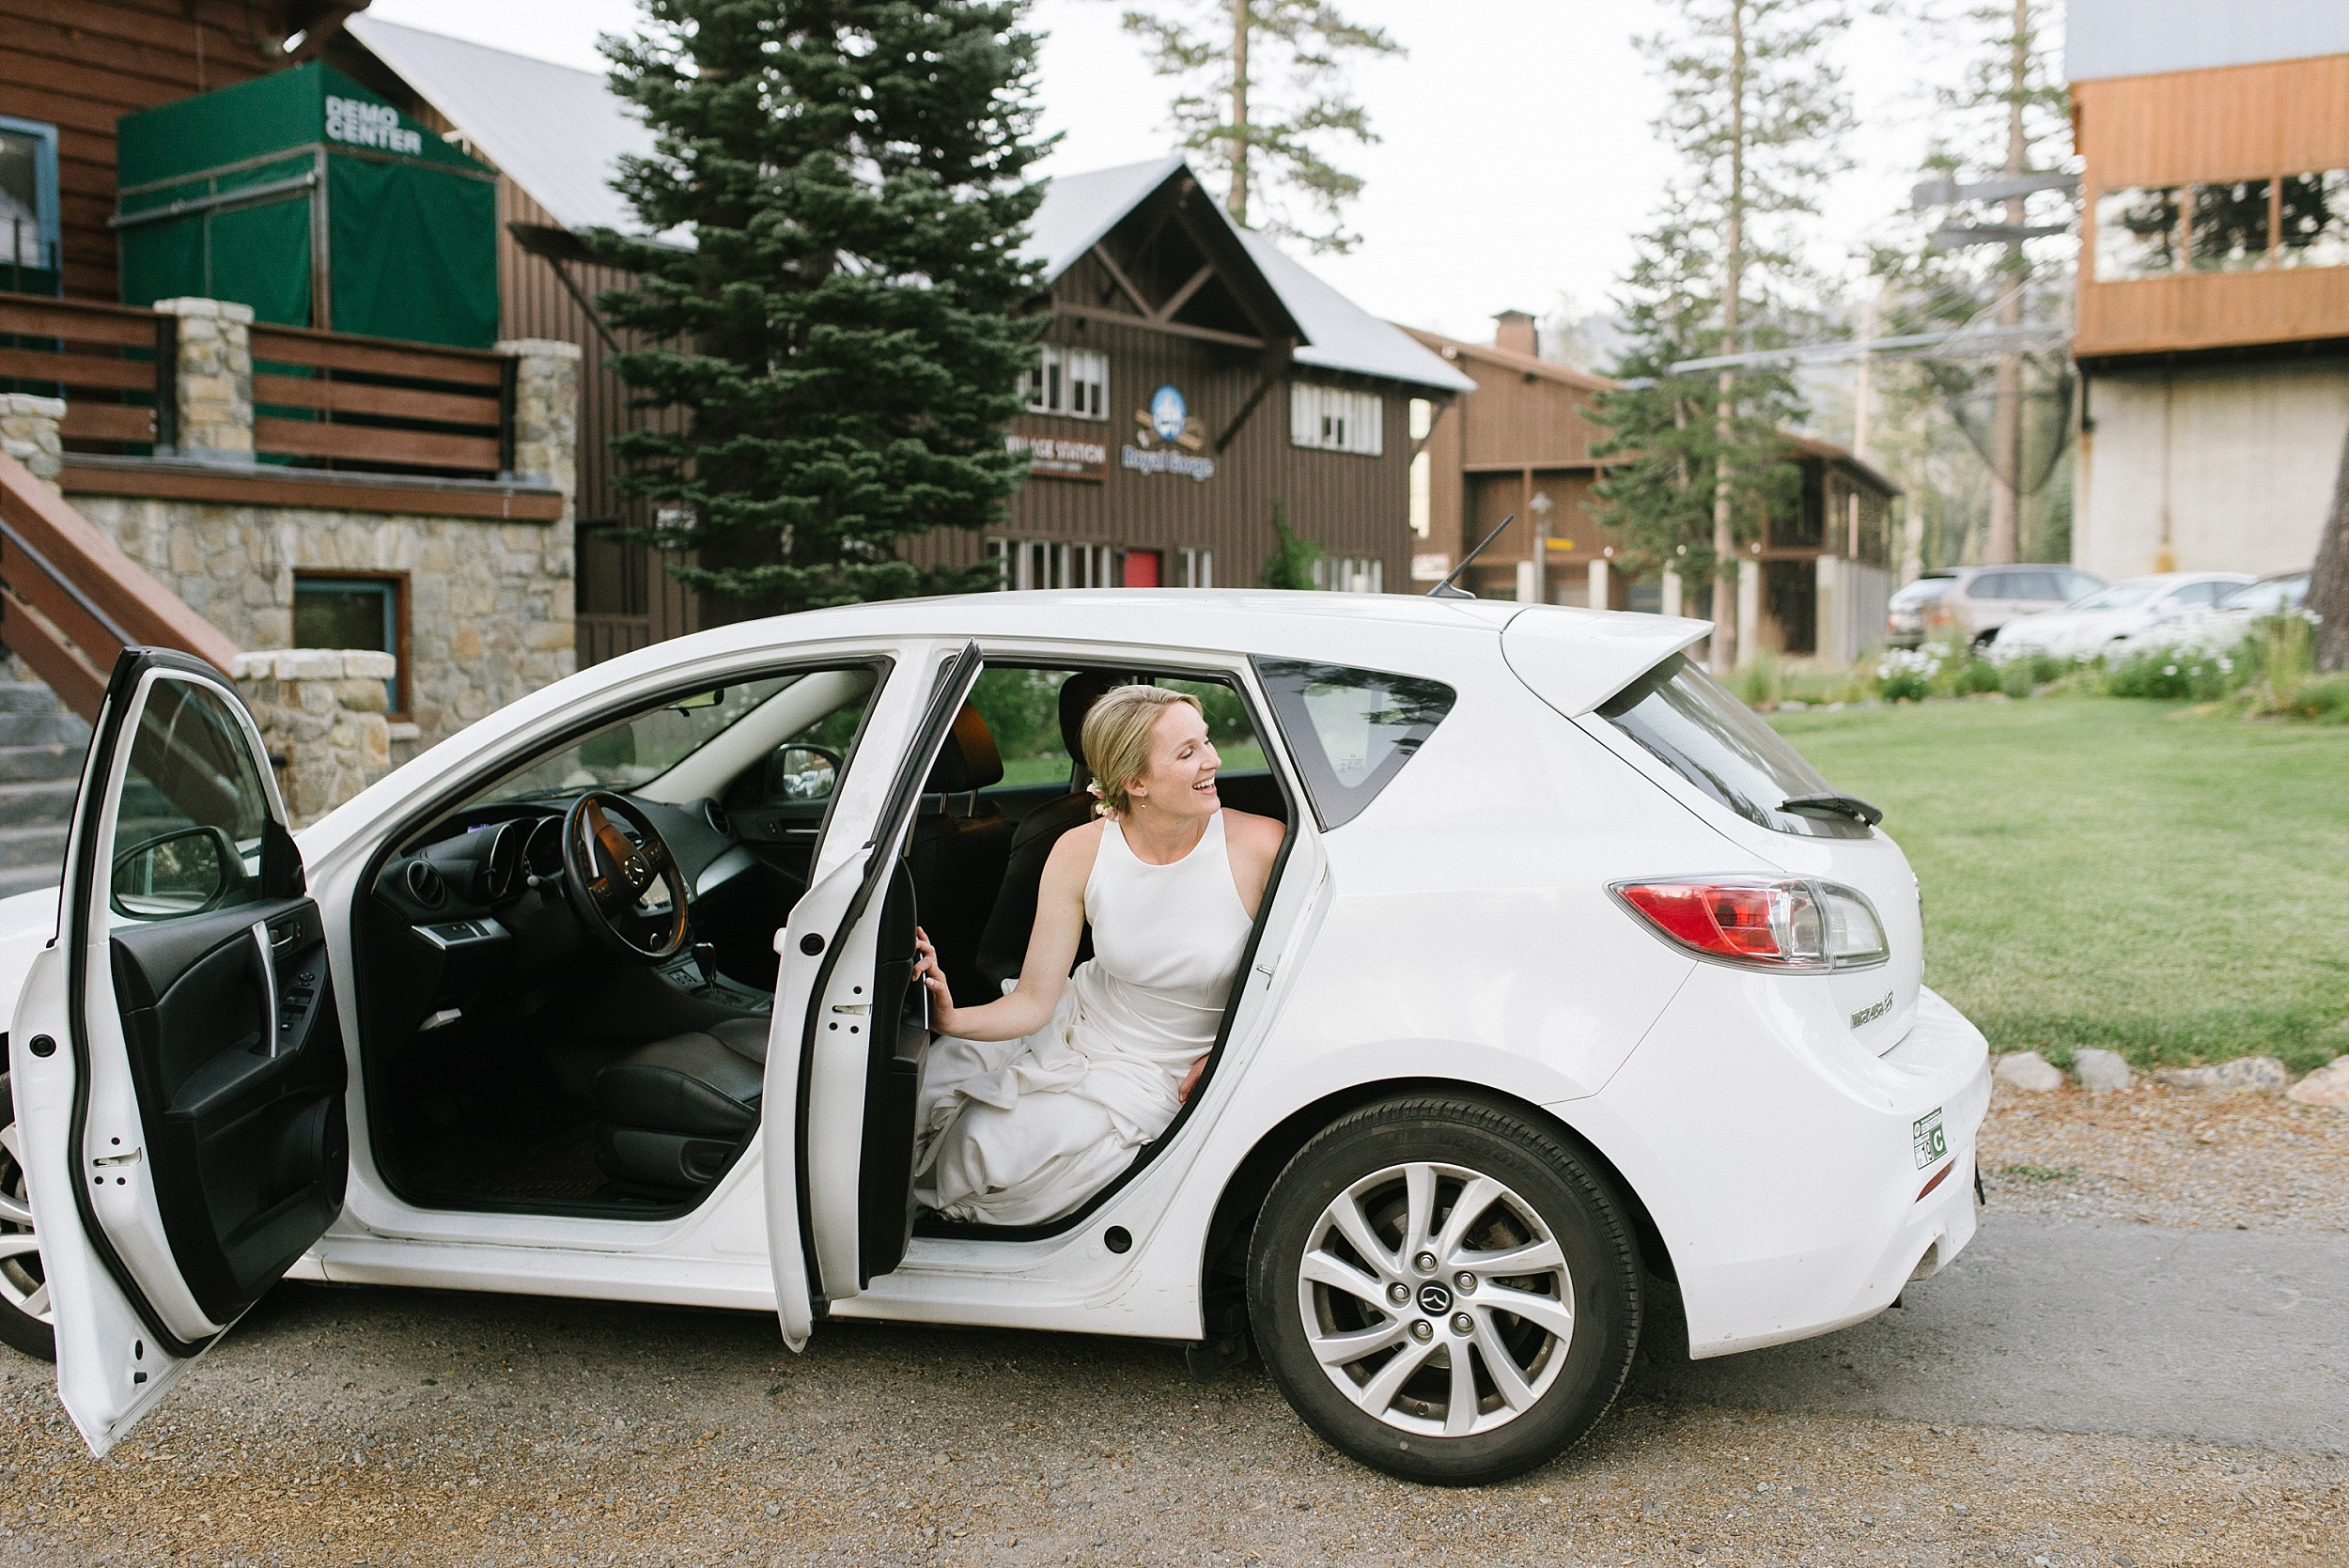 Sugar-Bowl-tahoe-wedding-sallyjohn_chelsea-dier-photography_0040.jpg